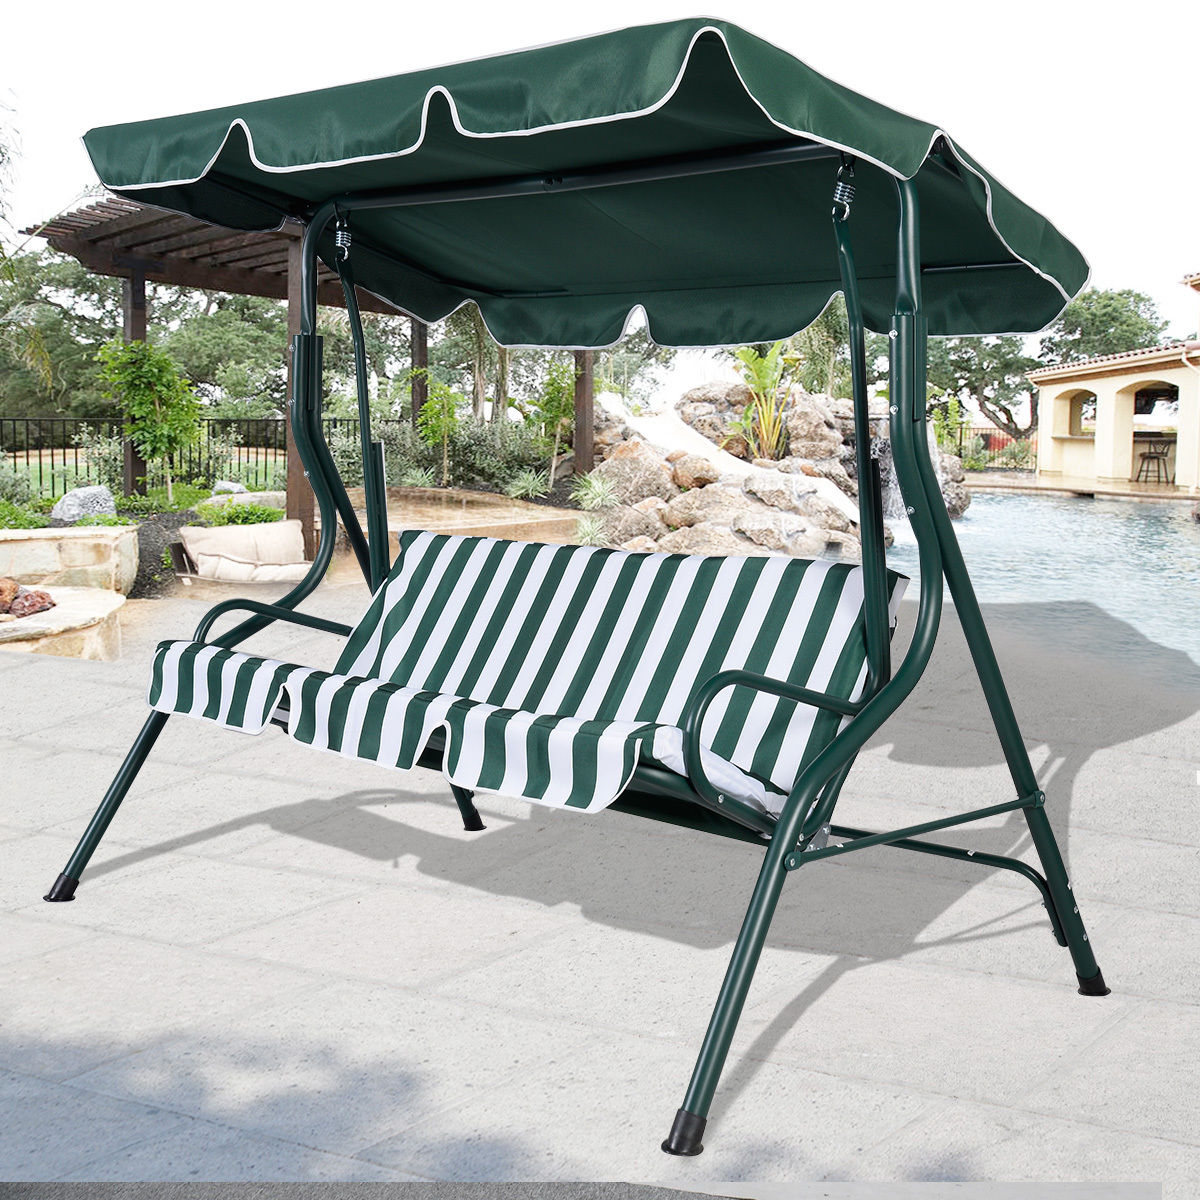 3 Person Brown Steel Outdoor Swings Intended For 2019 Swing Chair Brown 3 Person Patio Canopy Swing Sling Seating (Gallery 23 of 25)